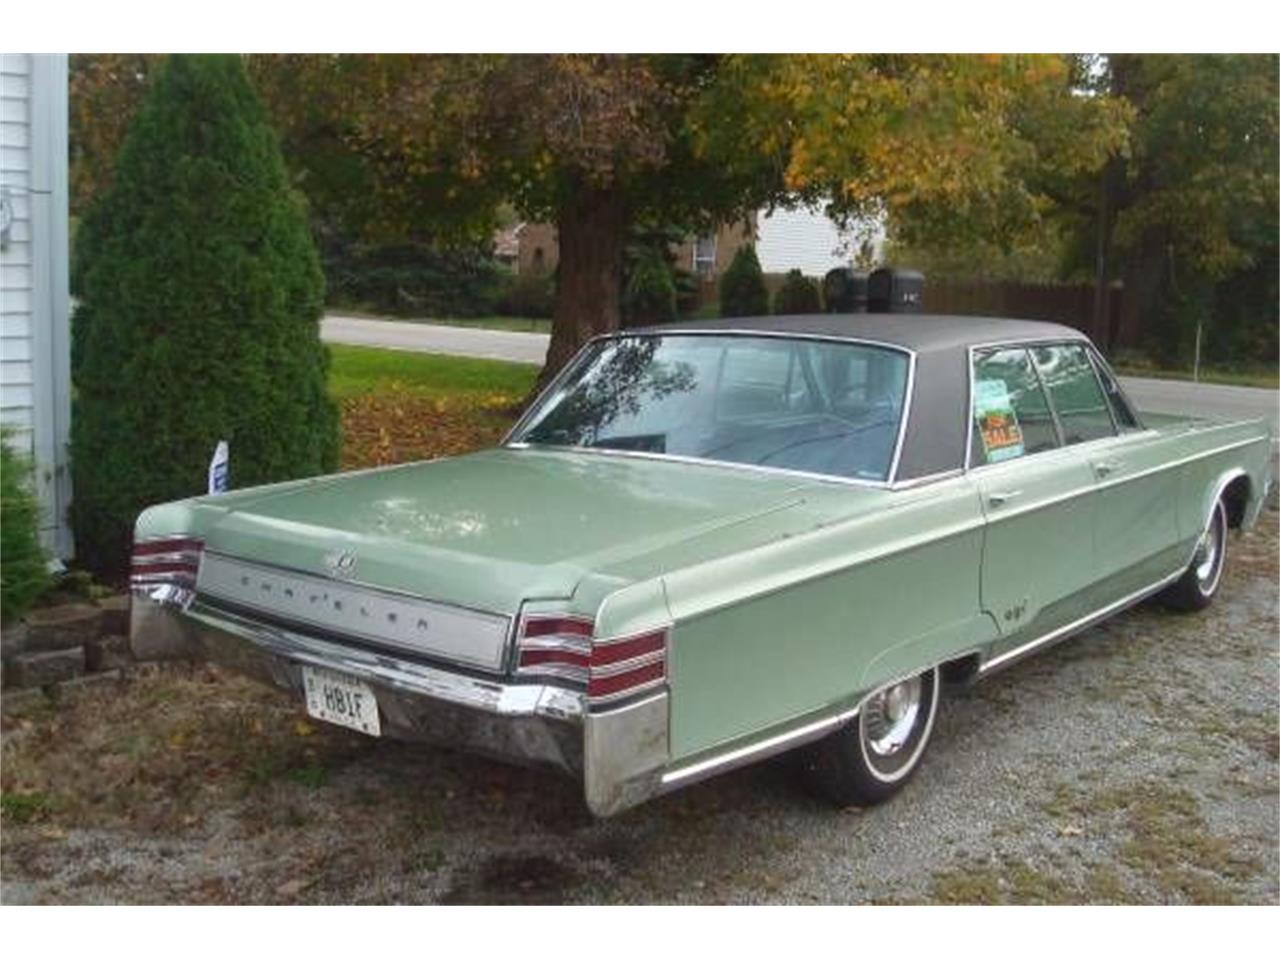 1967 chrysler new yorker for sale classiccars com cc 1121158 1967 Chrysler New Yorker 4 Door large picture of \u002767 new yorker o13a